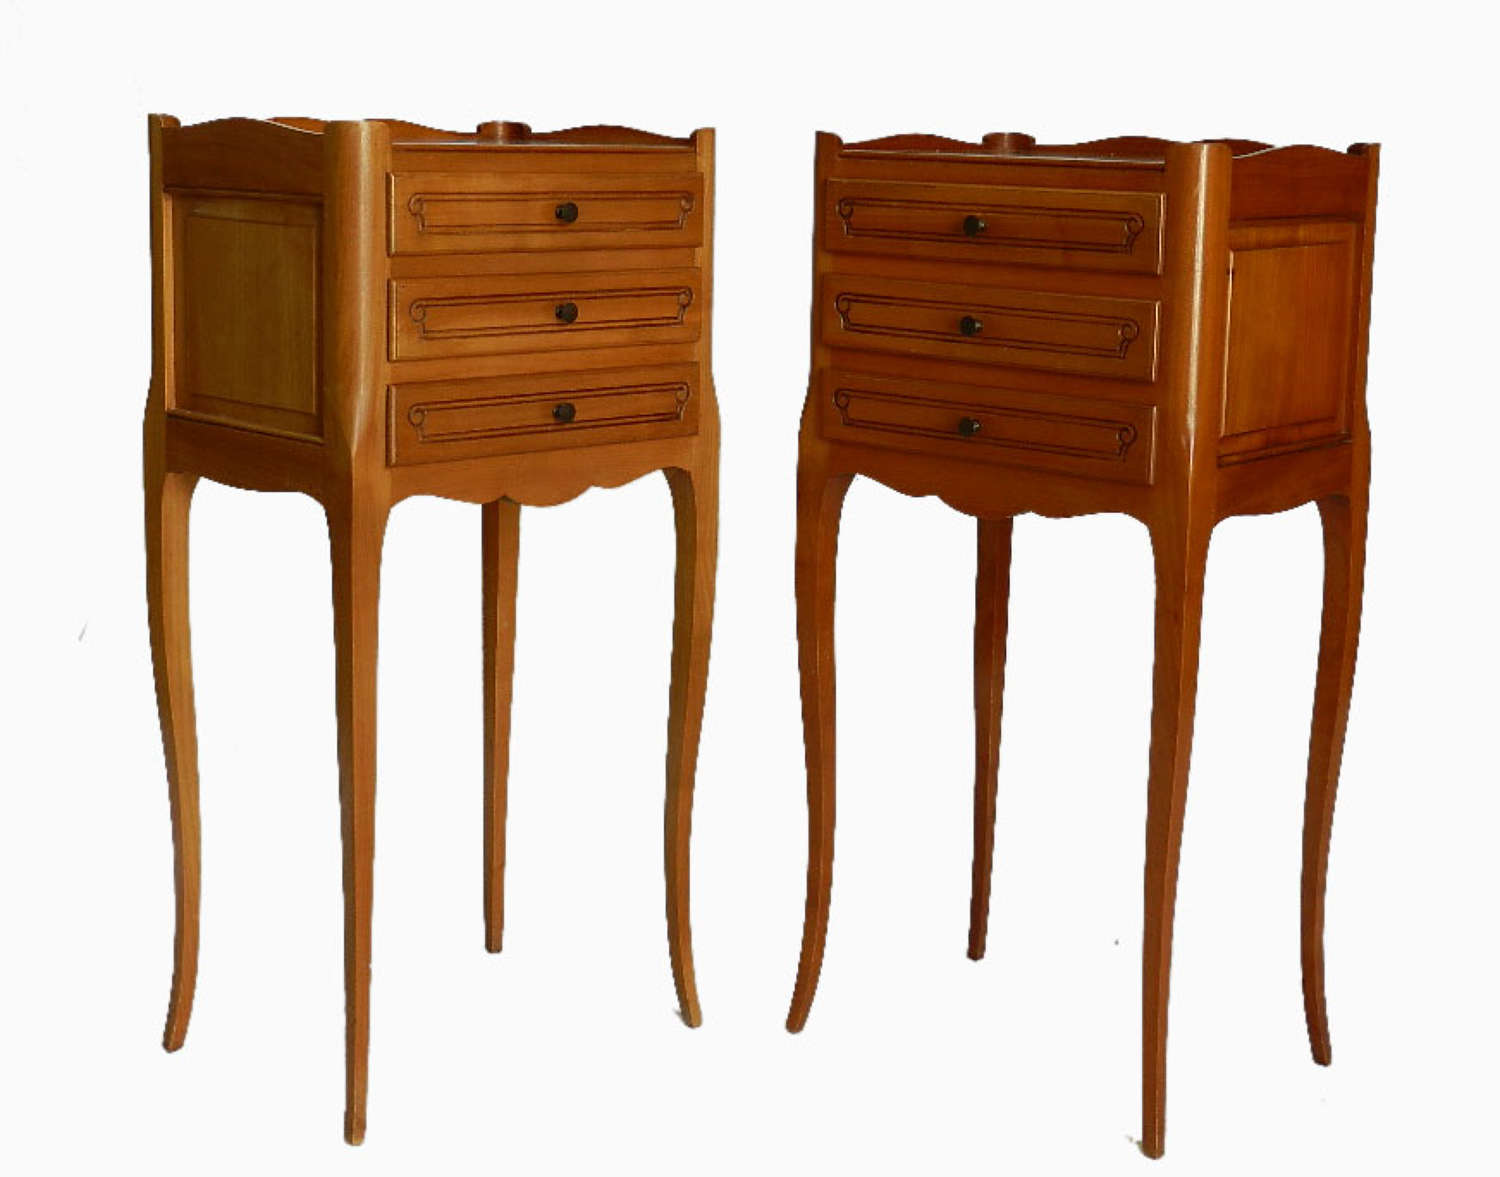 Pair of French Louis revival Cherry Bedside Tables